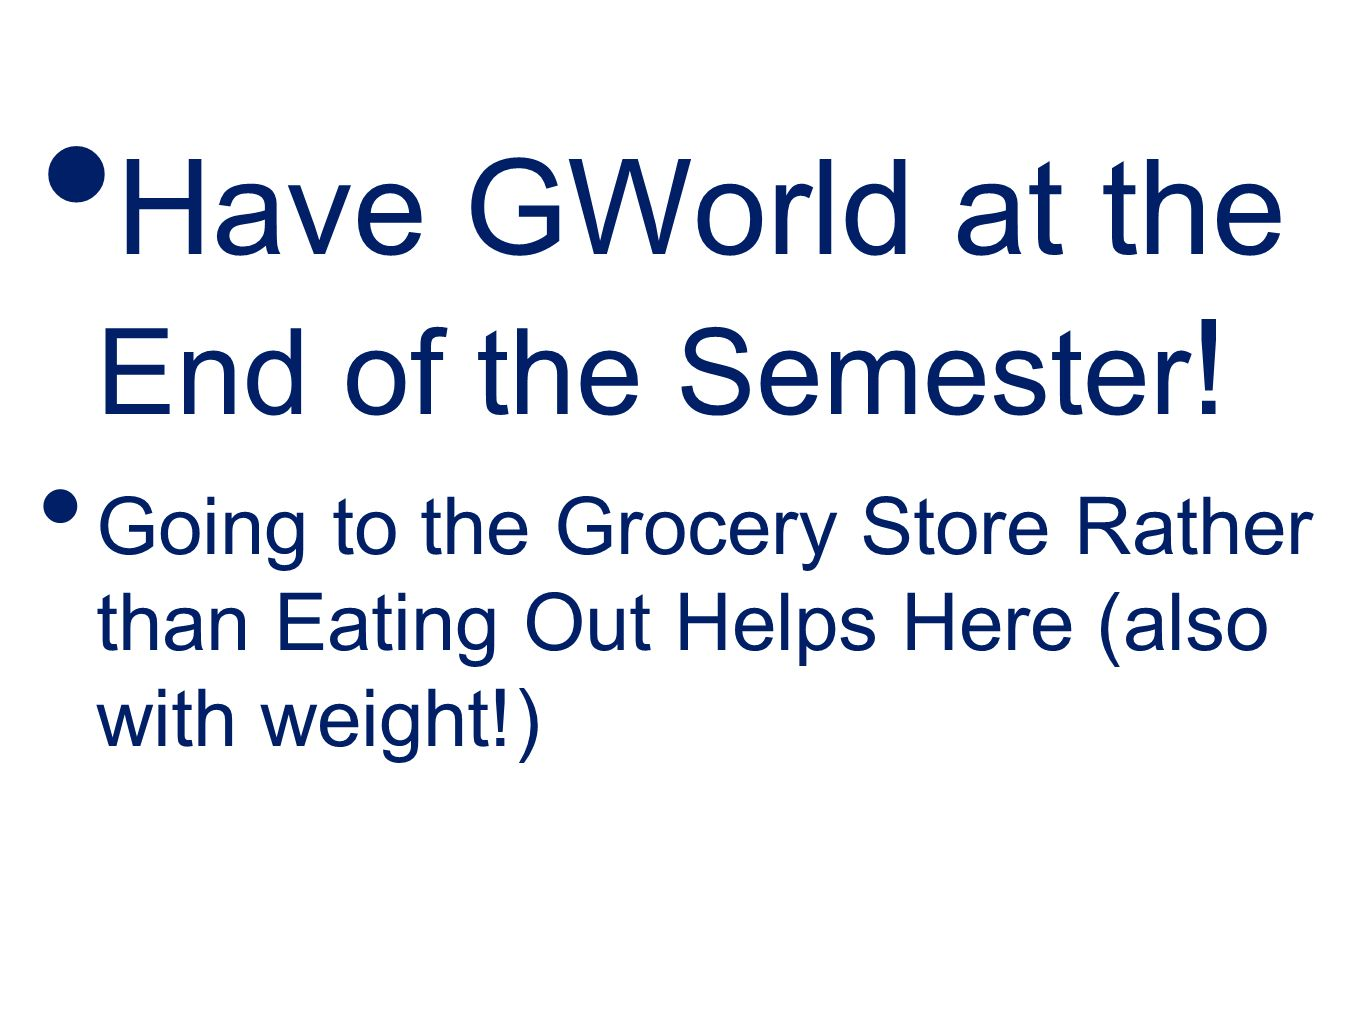 Have GWorld at the End of the Semester ! Going to the Grocery Store Rather than Eating Out Helps Here (also with weight!)